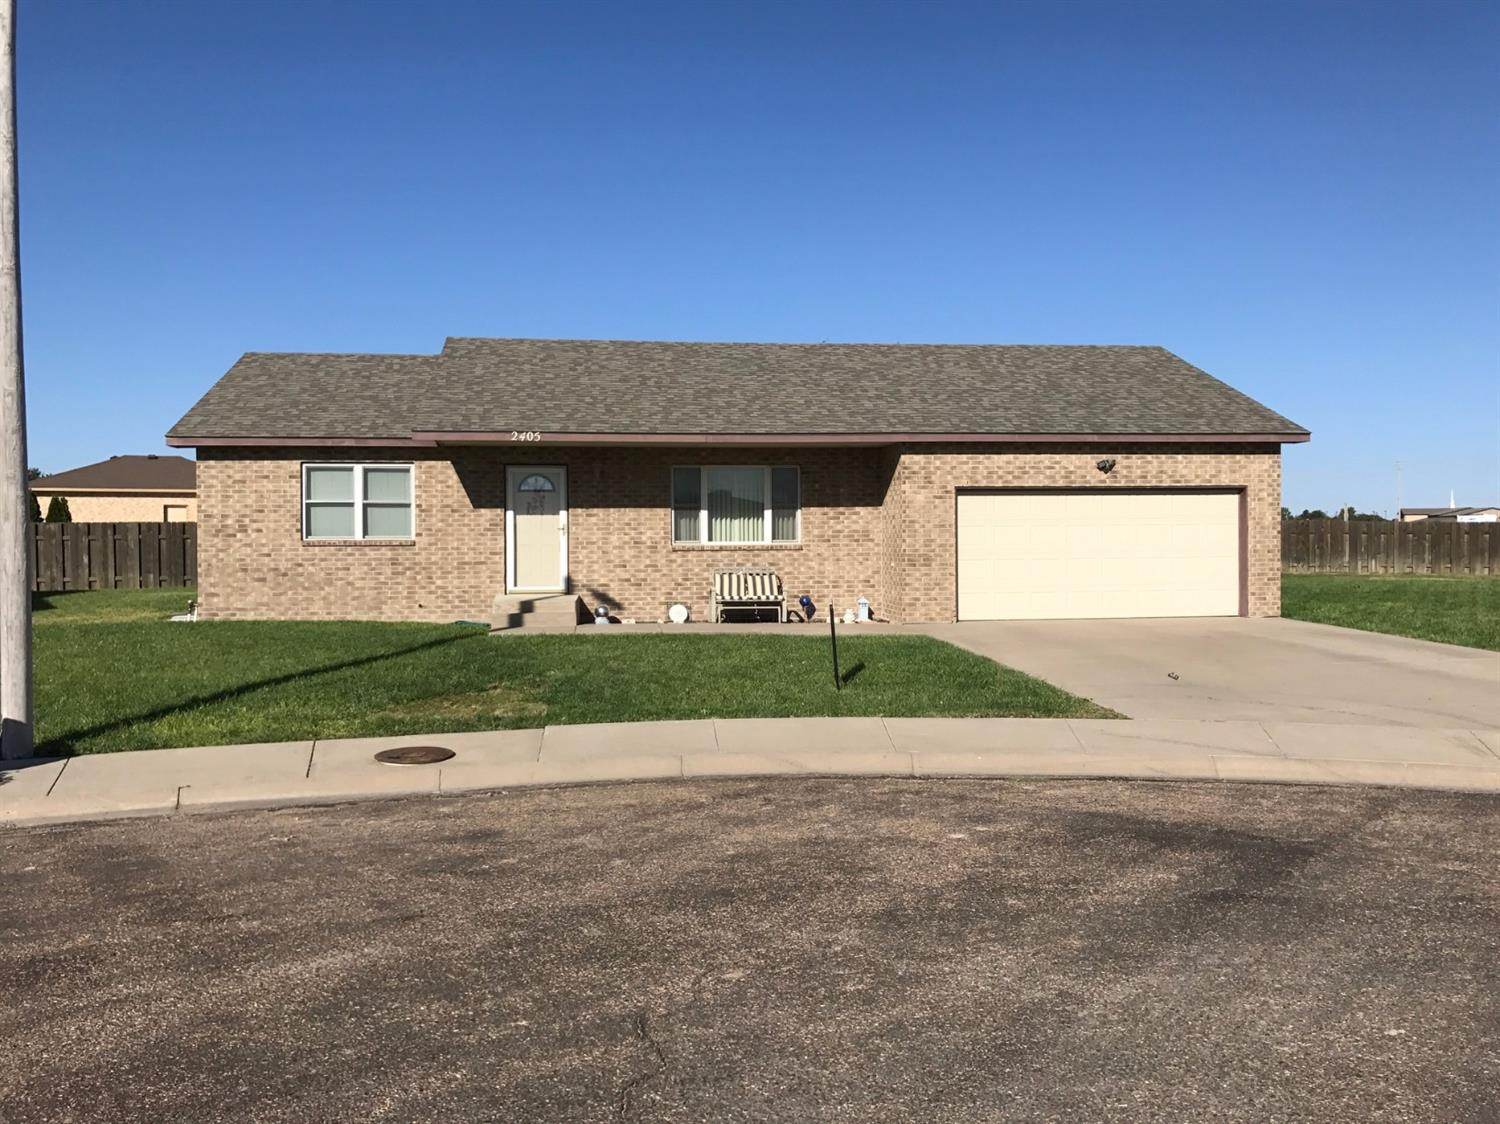 2405 Yosemite Court, Garden City, KS 67846